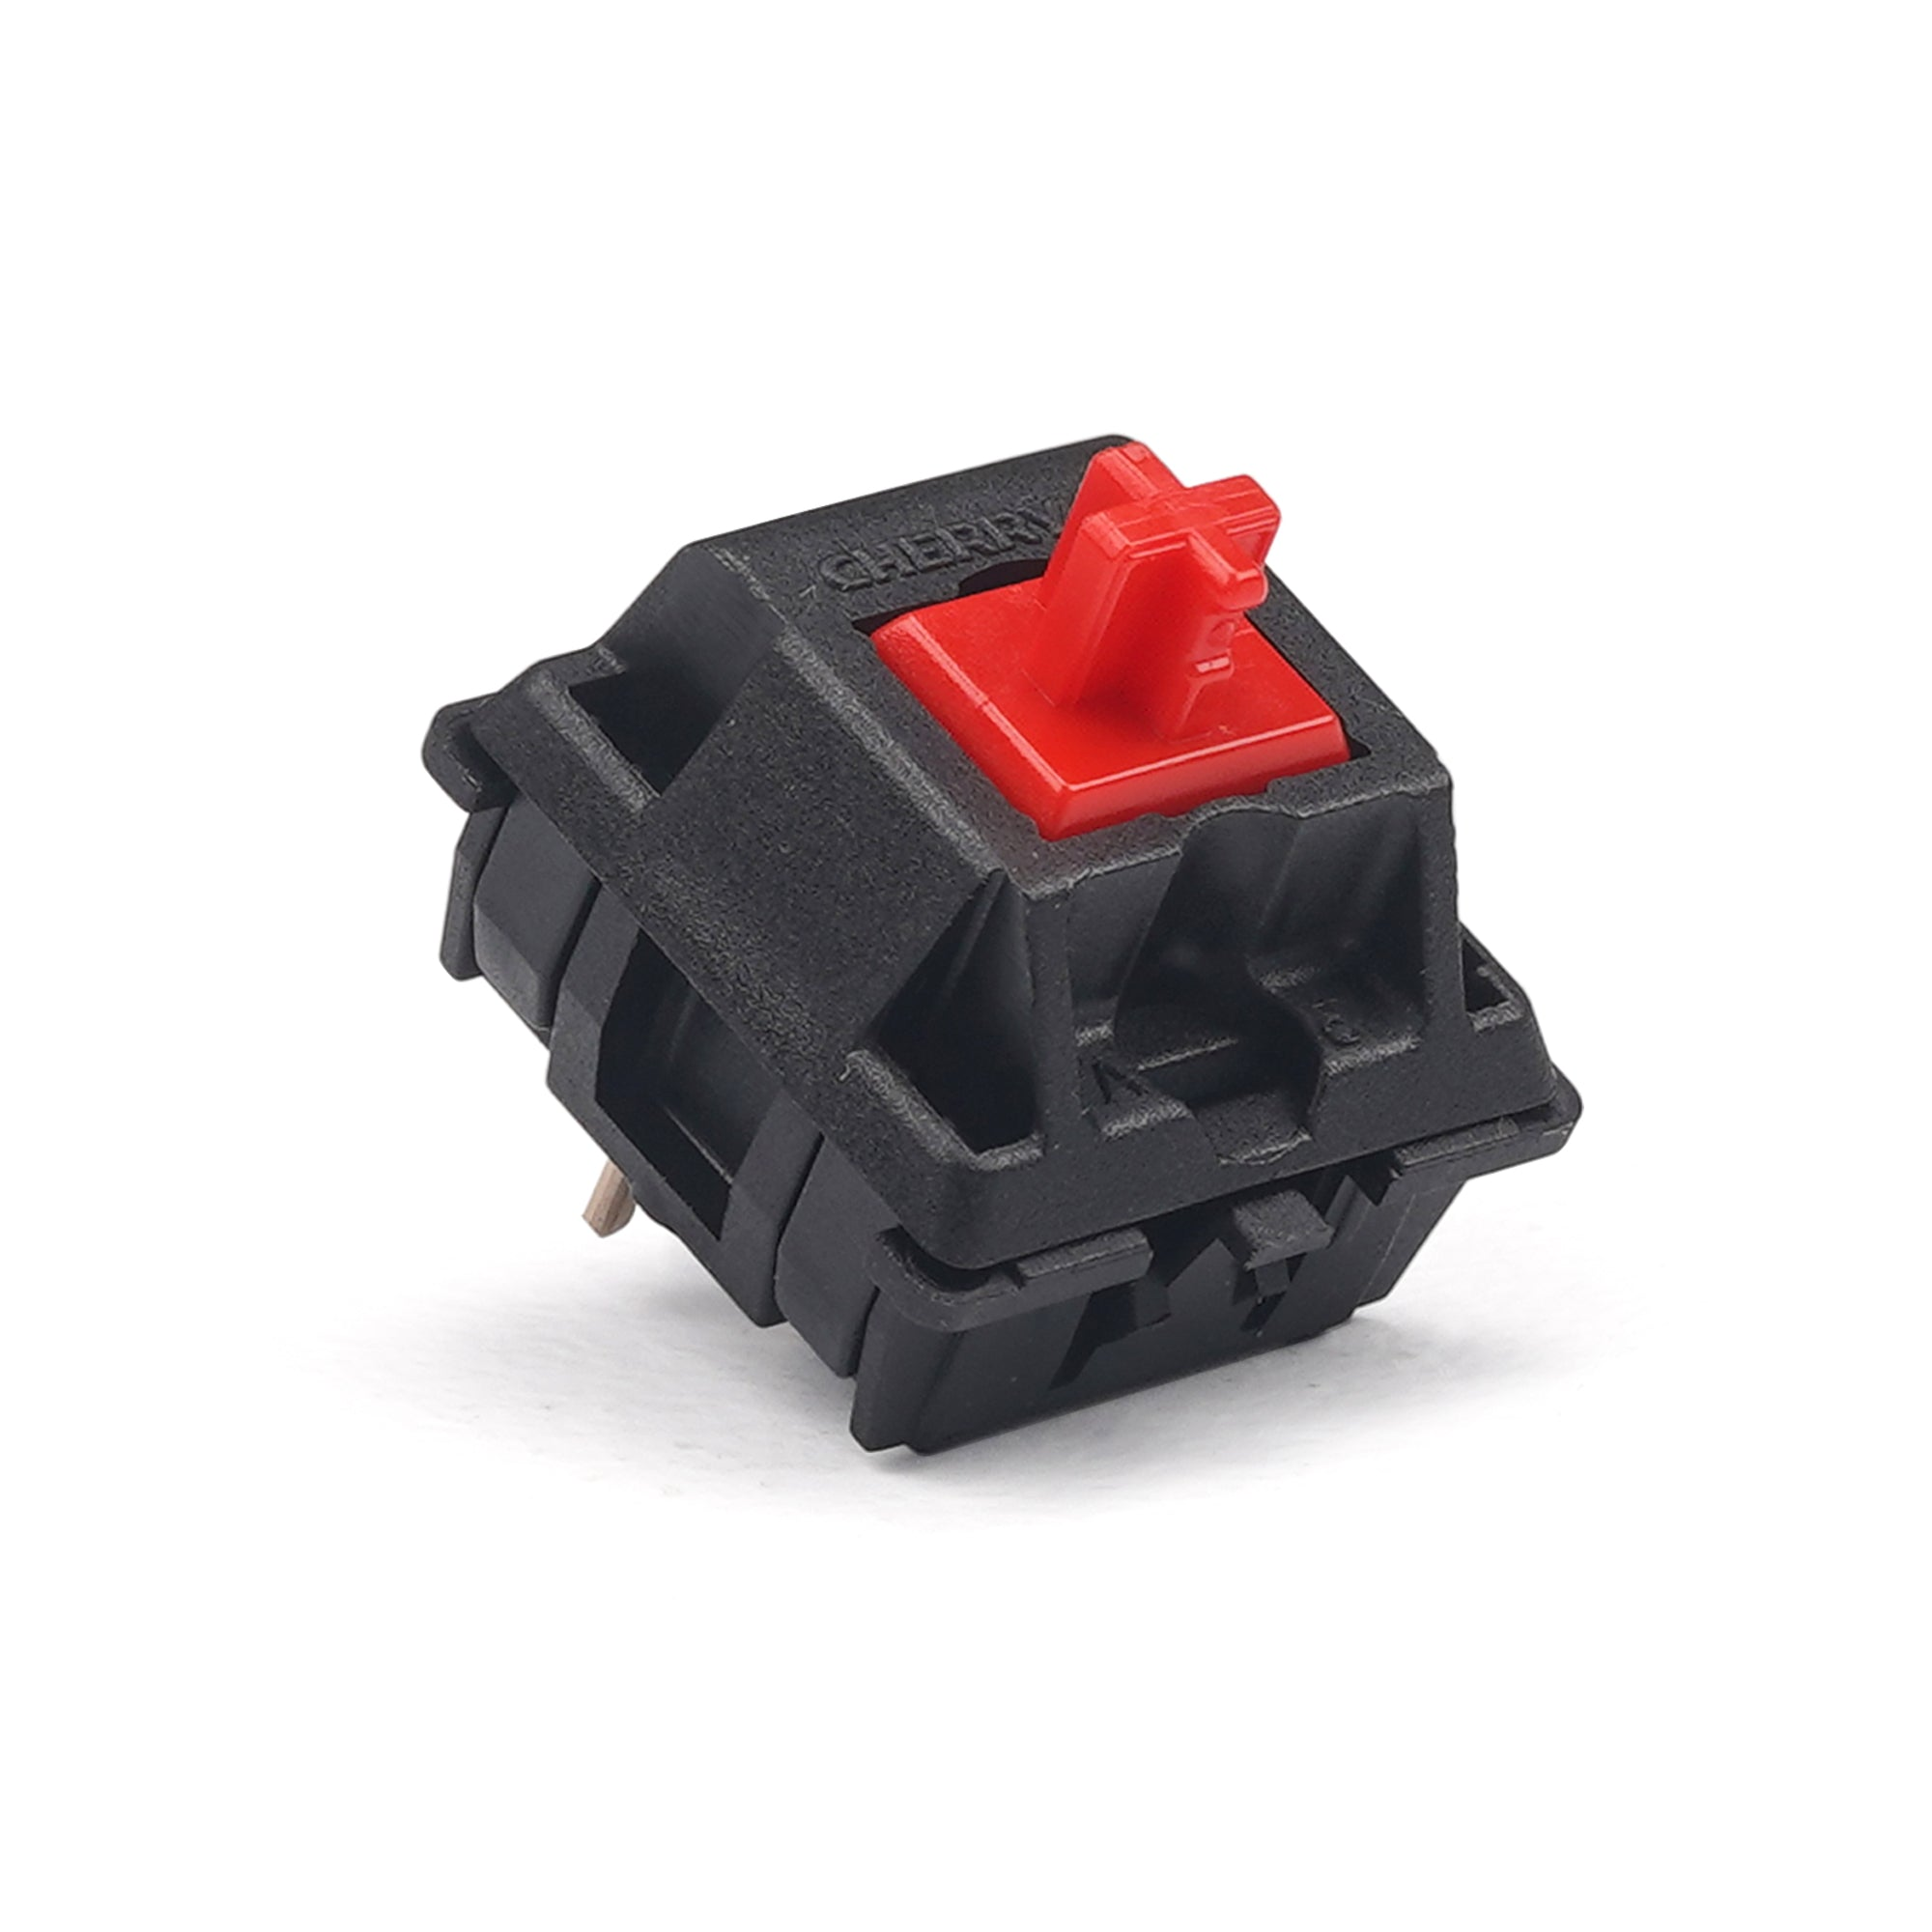 Kaihua box mechanical keyboard switch(10pcs)